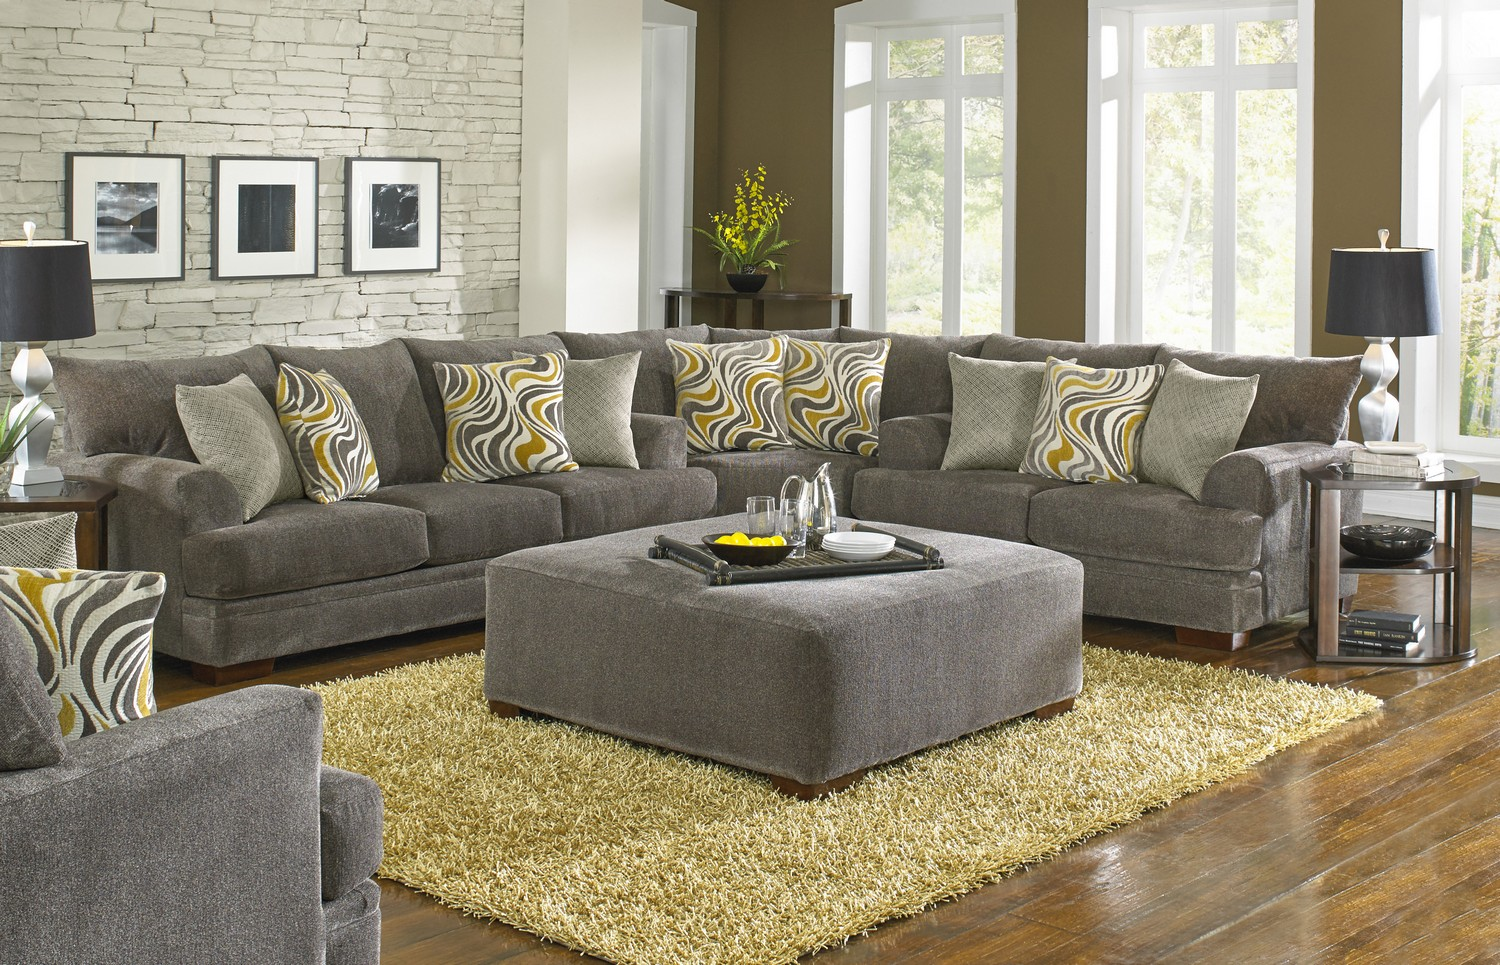 jackson suffolk sofa reviews and carpet cleaning services in karachi crompton sectional set pewter jf 4462